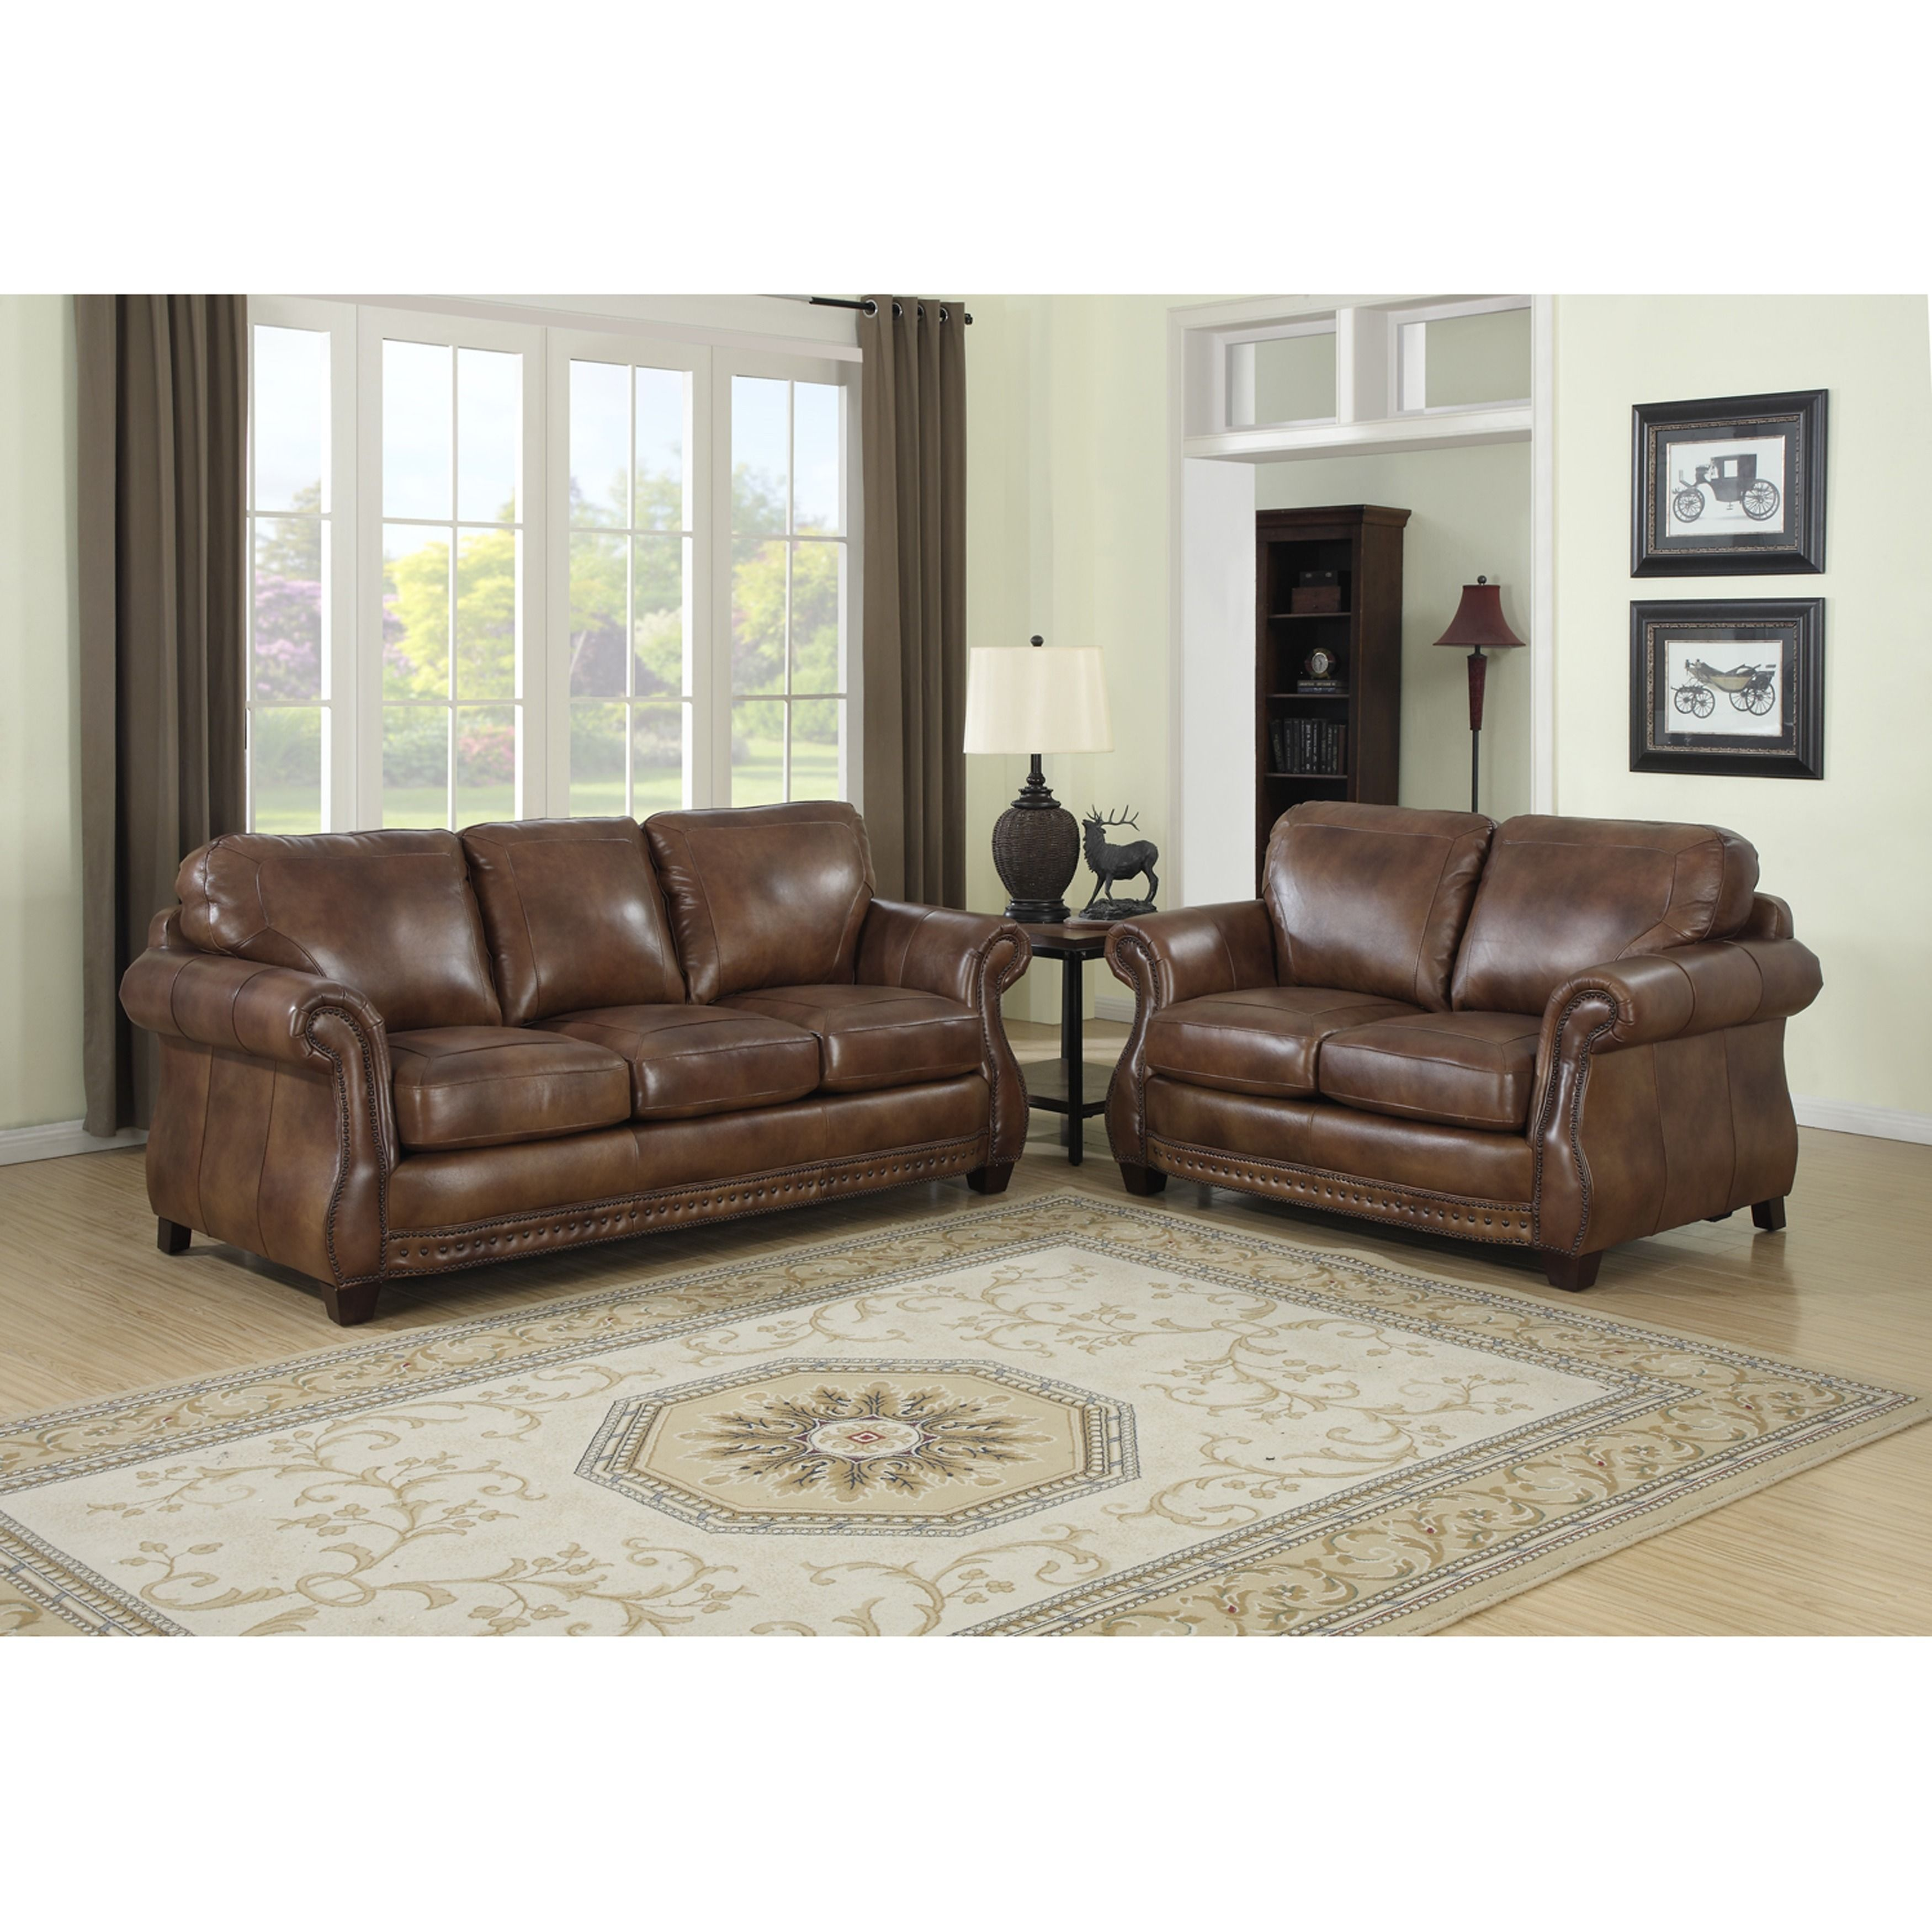 Best Sterling Cognac Brown Italian Leather Sofa And Loveseat 640 x 480